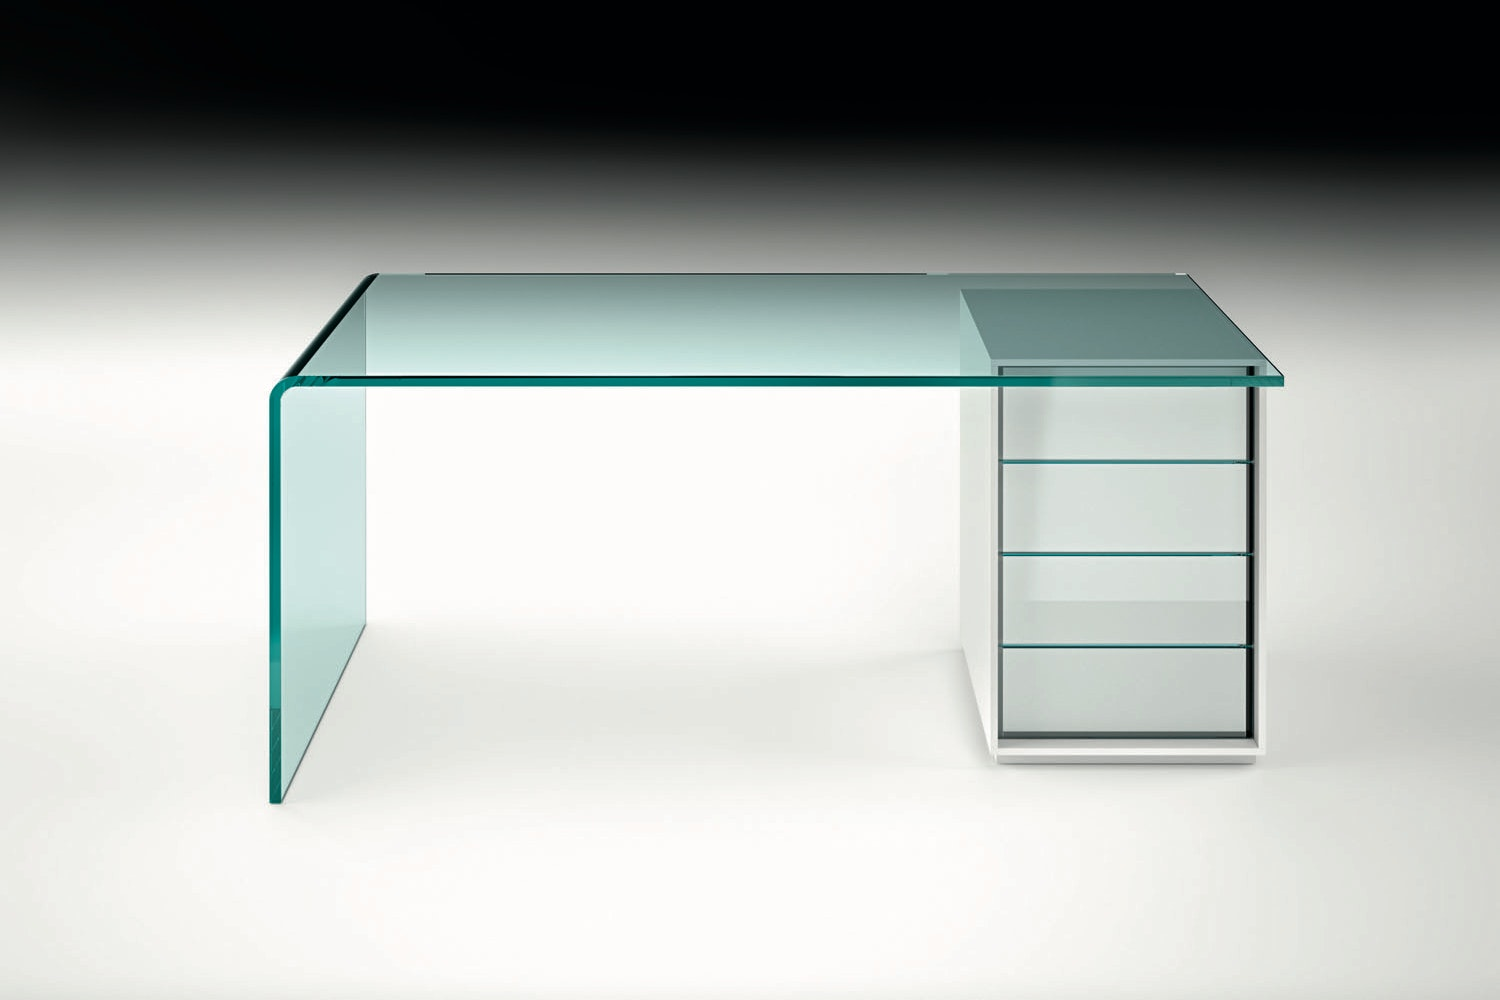 Rialto L Desk by CRS Fiam for Fiam Italia